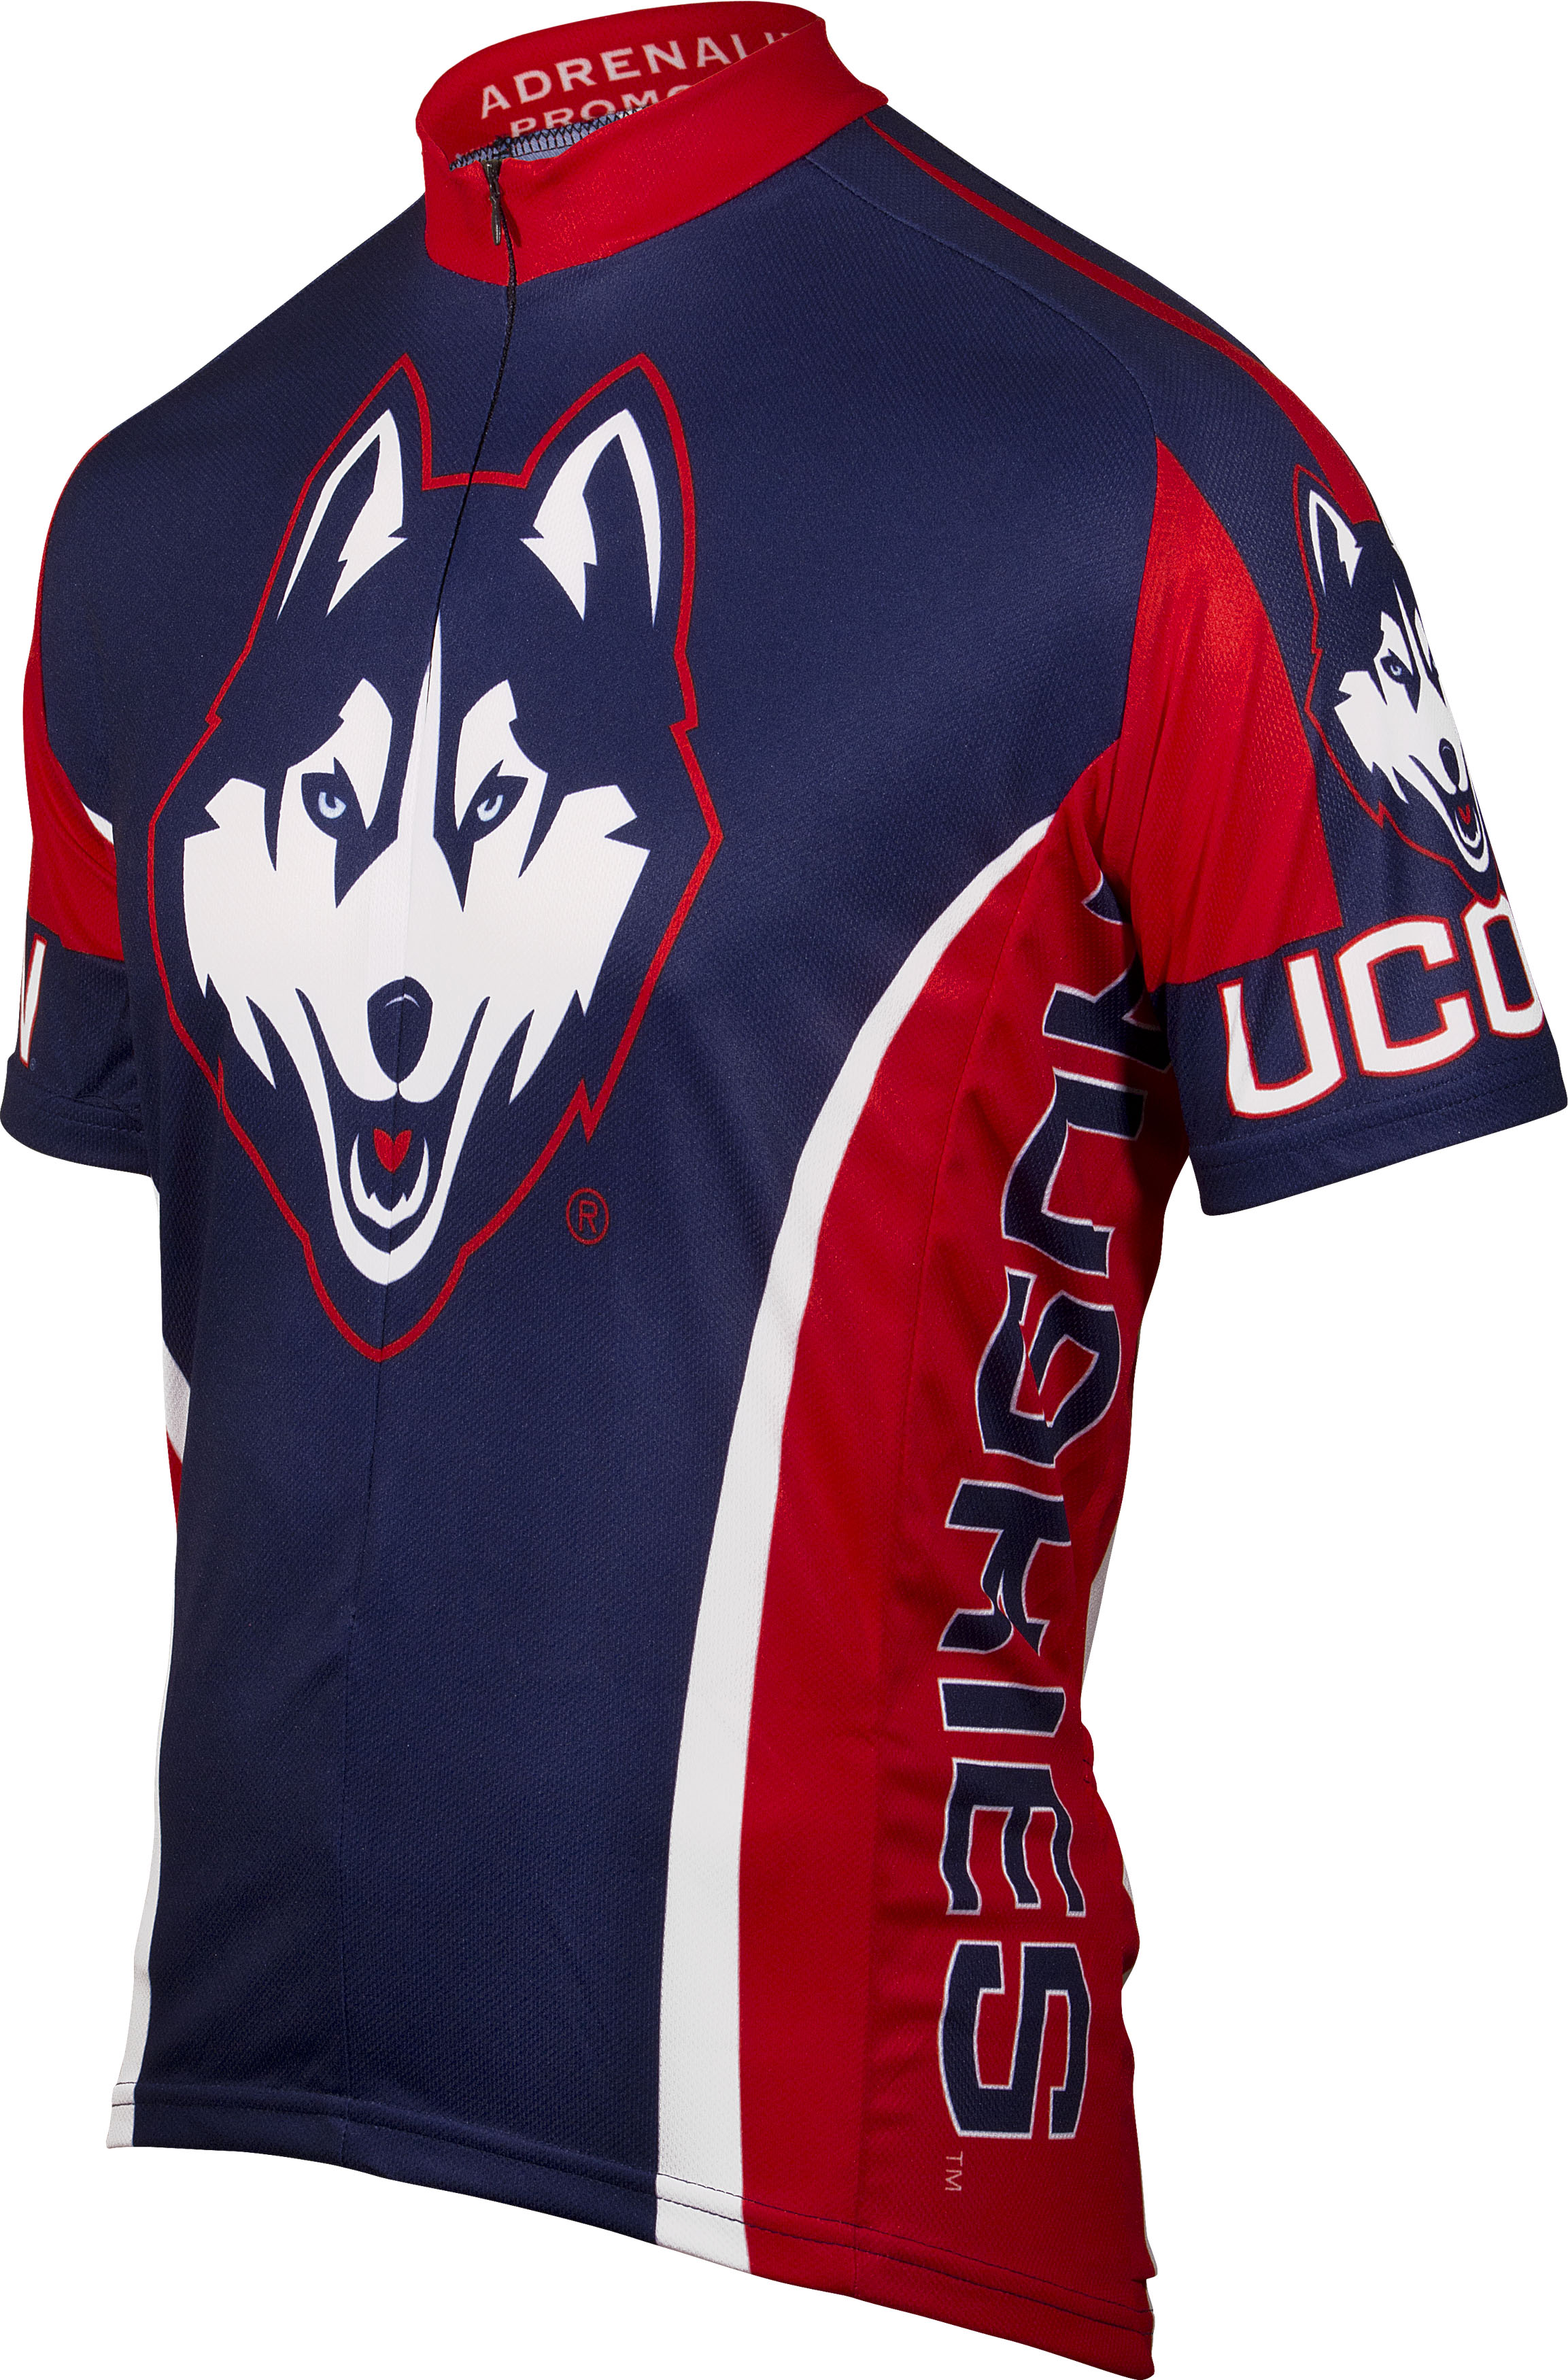 University of Connecticut (UCONN) Cycling Jersey Small